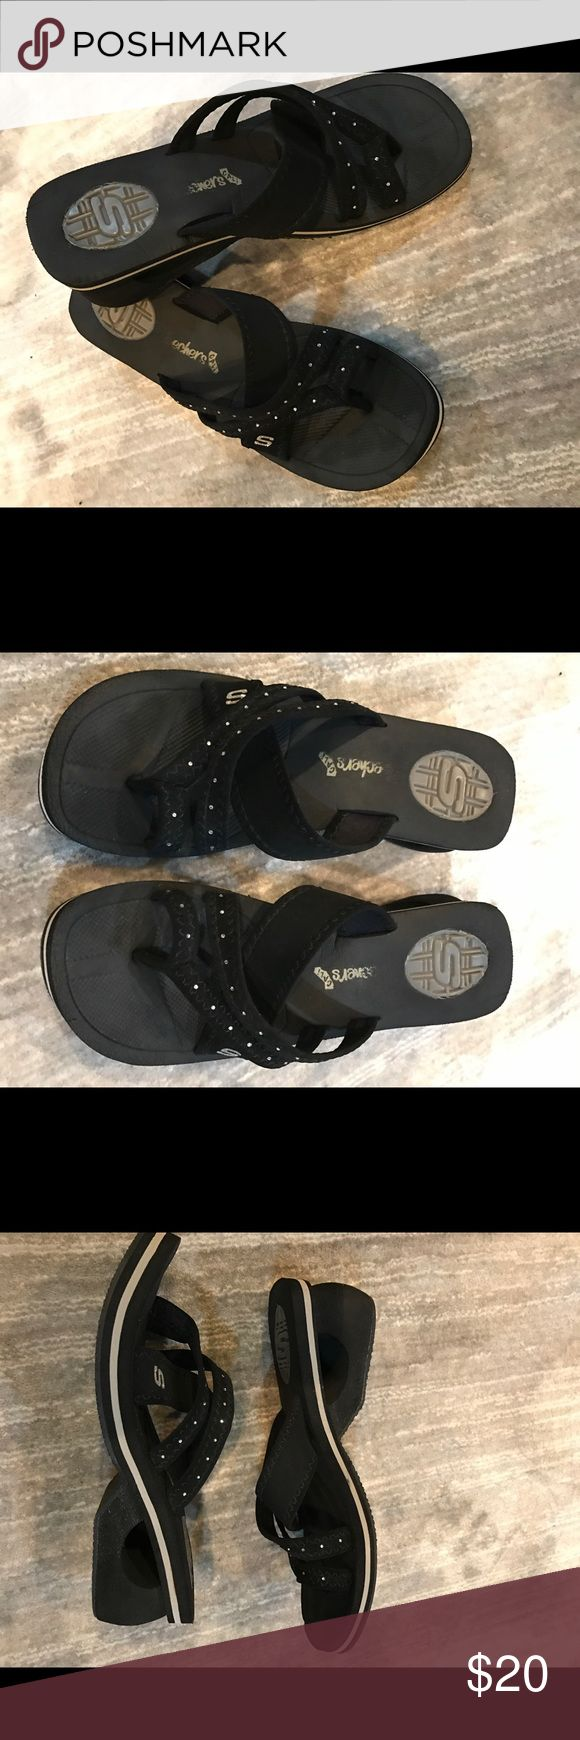 Skechers black wedges, excellent condition size 9 Skechers  black badges in very good condition size 9 Skechers Shoes Slippers